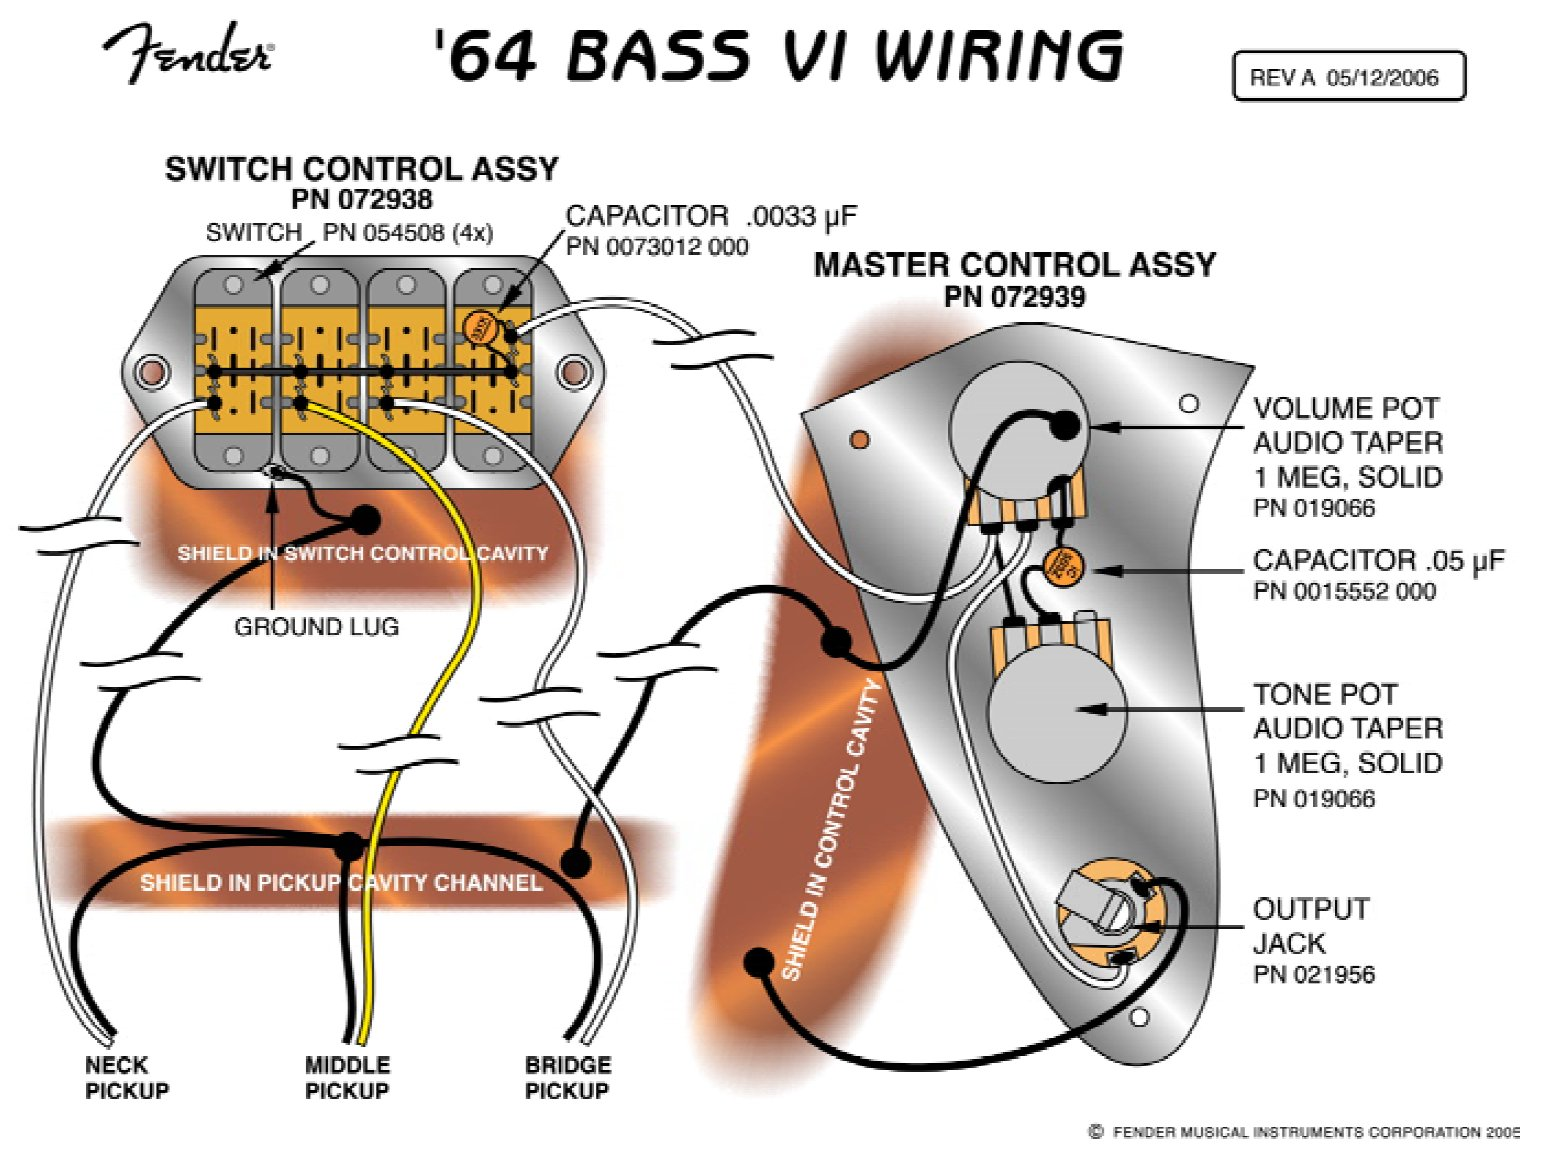 Unusual Strat Wiring Options Gallery Diagrams 1968 Ford Mustang Hsh Mod To Hh Sss Alloutputcom Magnificent P Bass Diagram Shield Photos Electrical And 642bbass2bvi2breissue